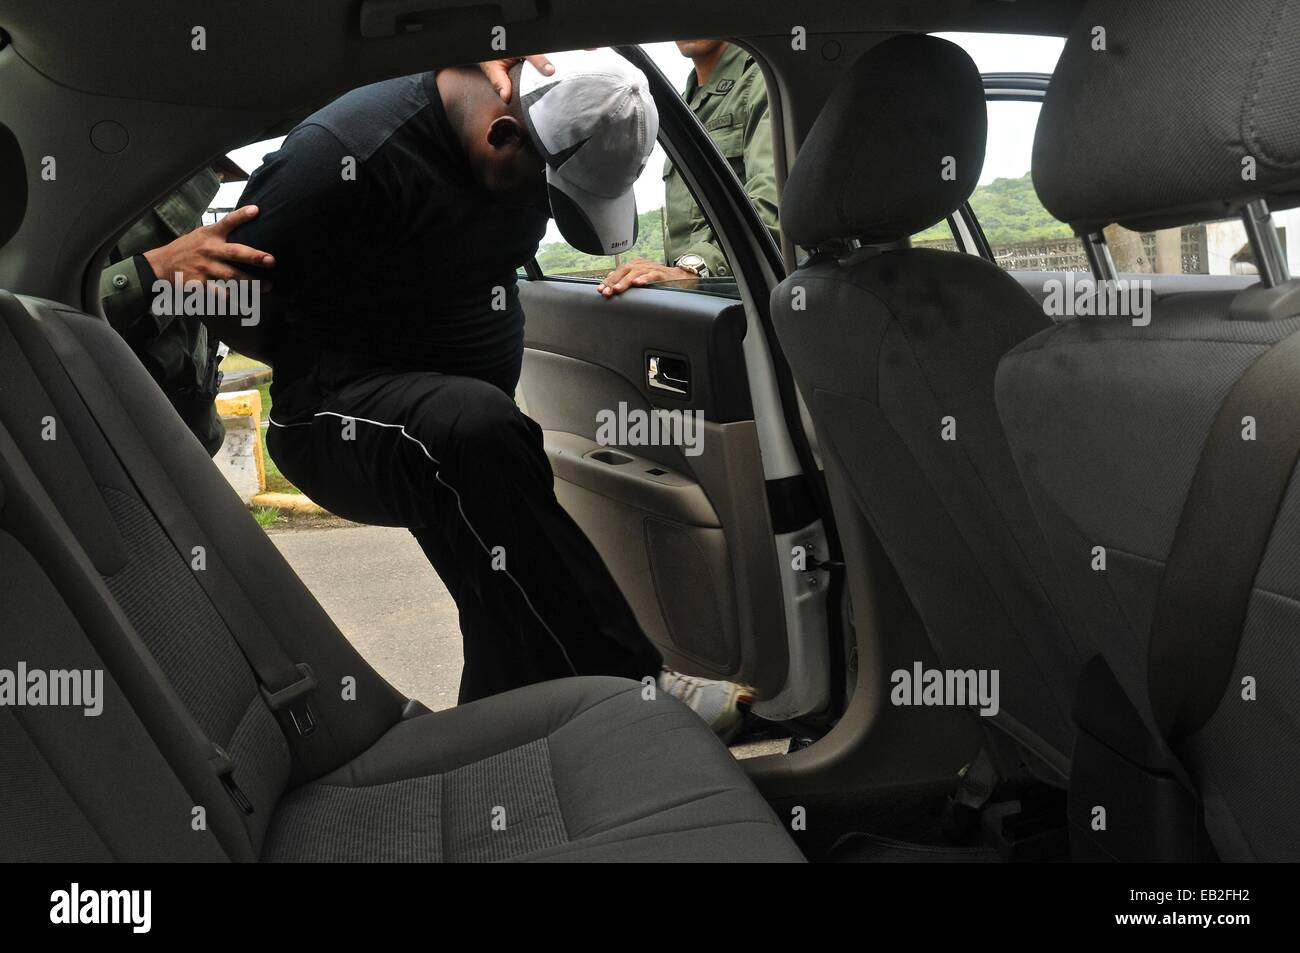 A practice arrest at a tactical and firearms training course at the Panamanian National Police Force Academy. - Stock Image